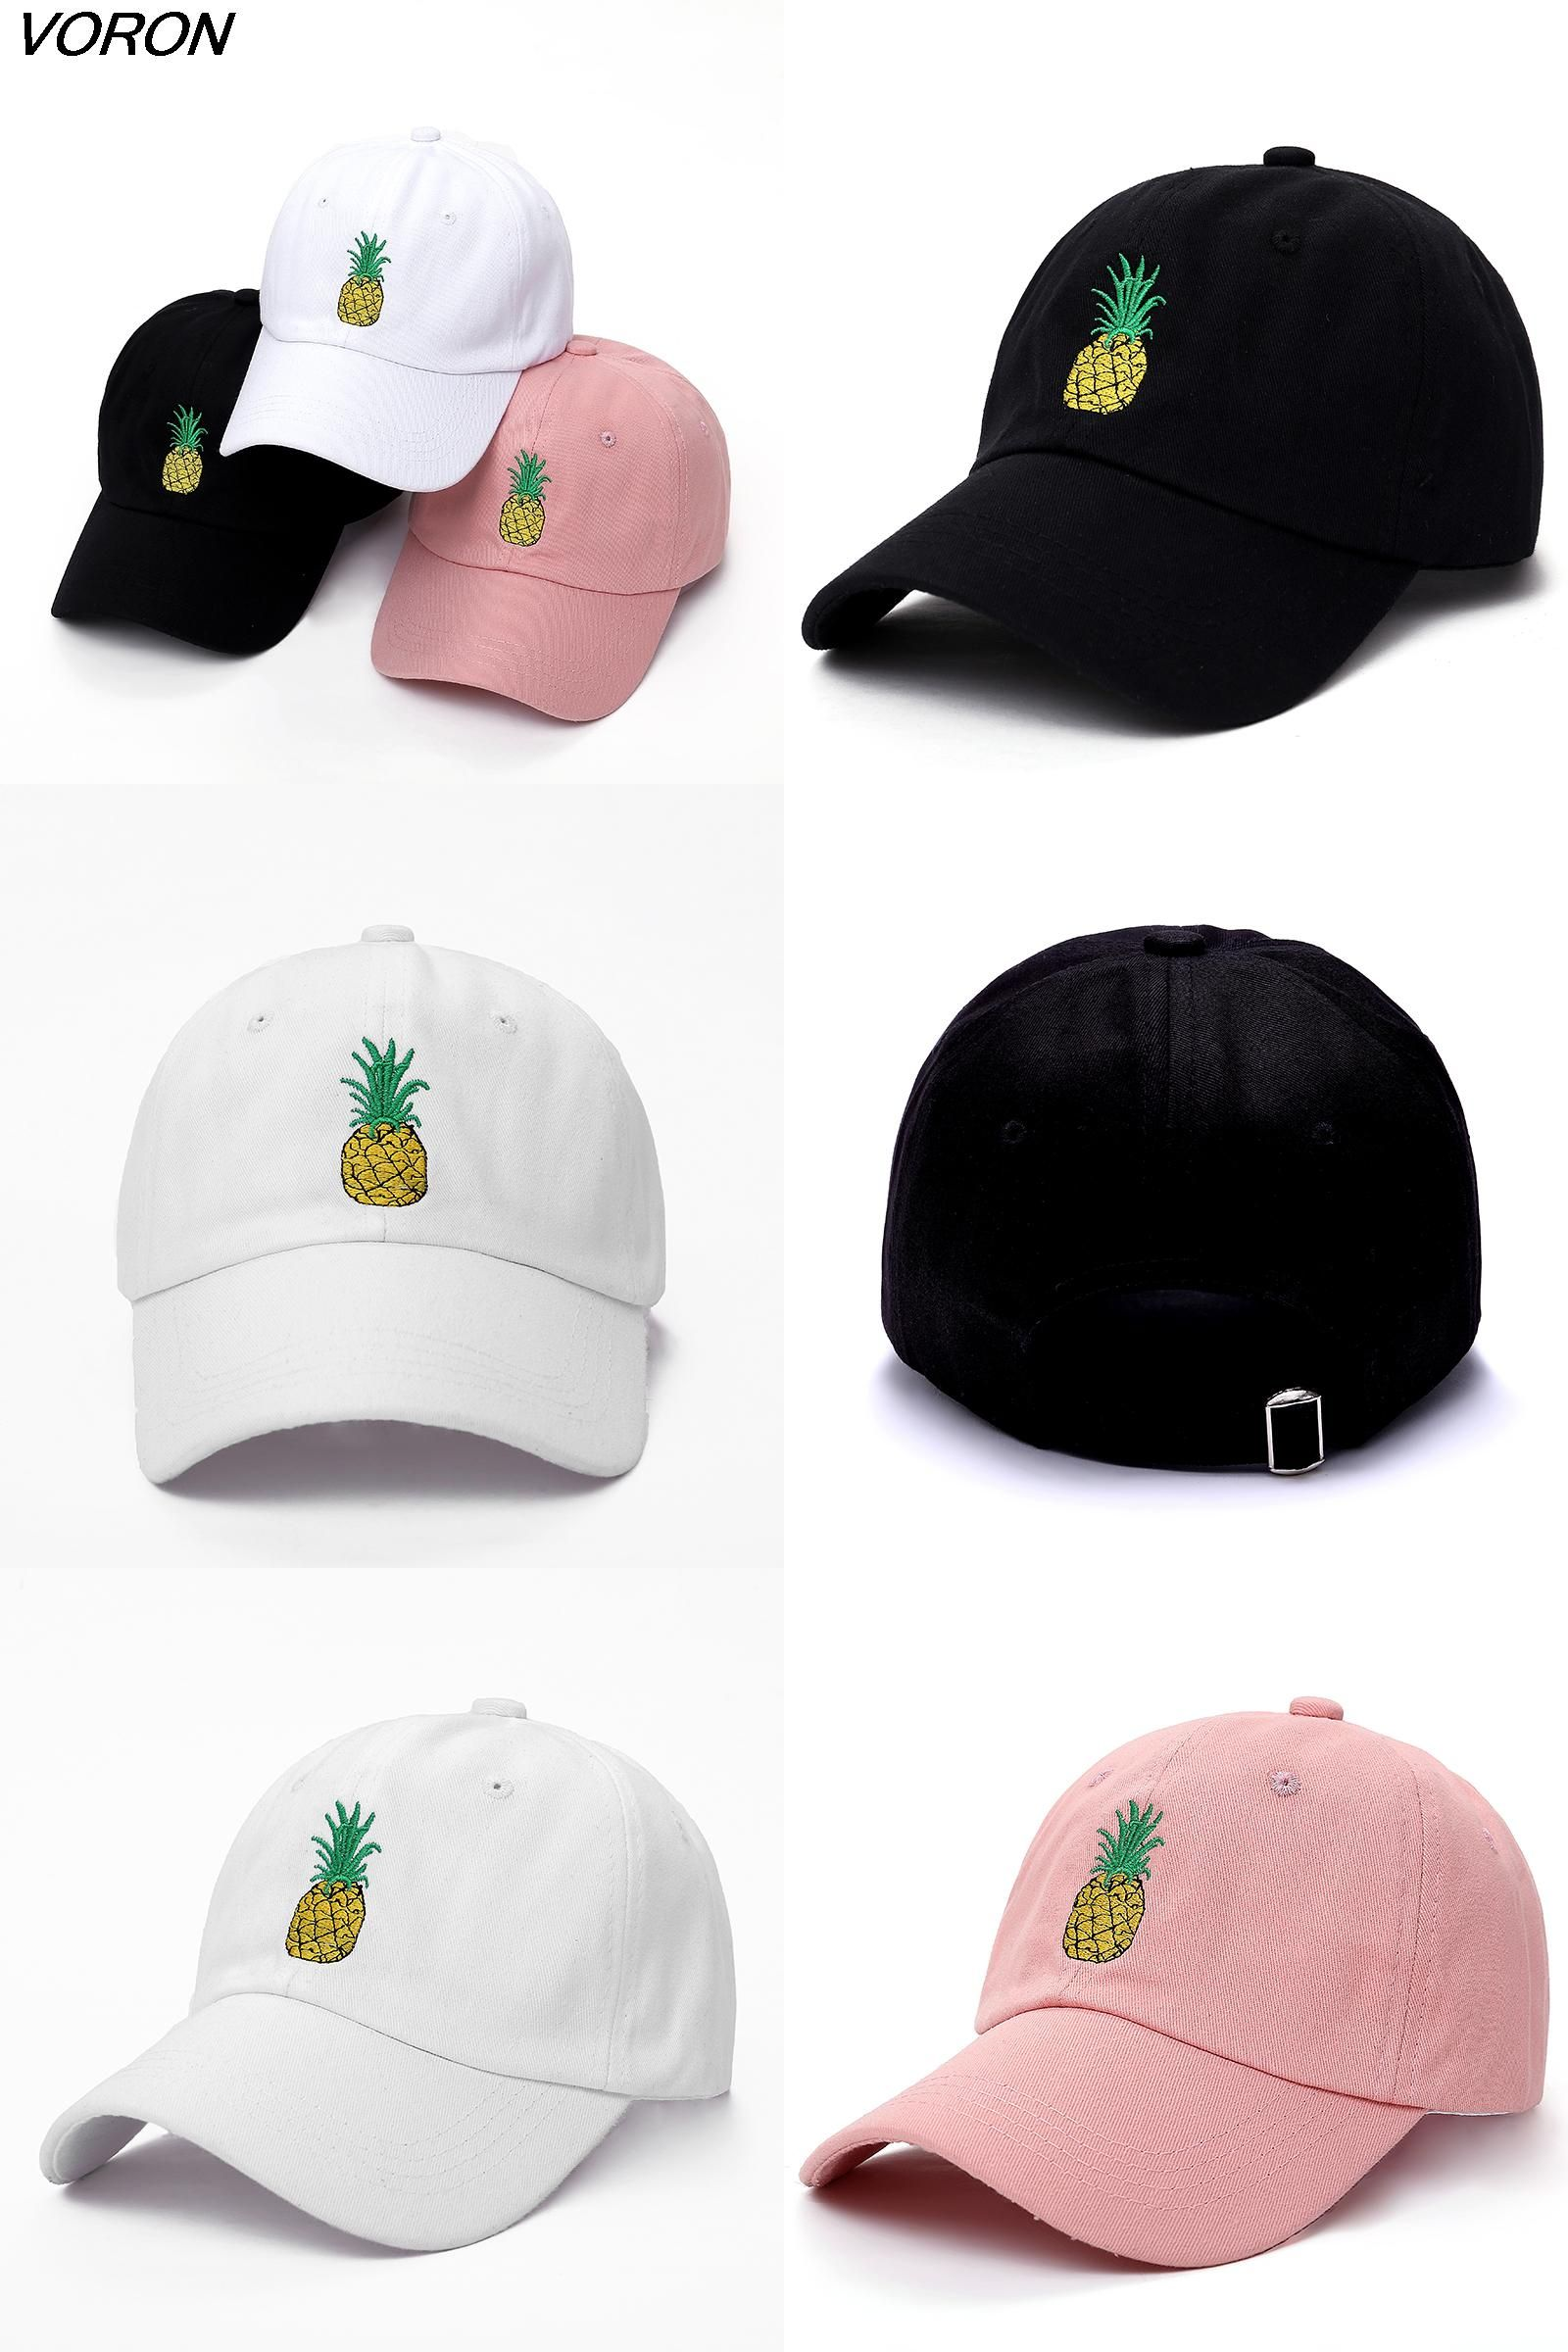 0894dbcfdc8  Visit to Buy  VORON men women Pineapple Dad Hat Baseball Cap Polo Style  Unconstructed